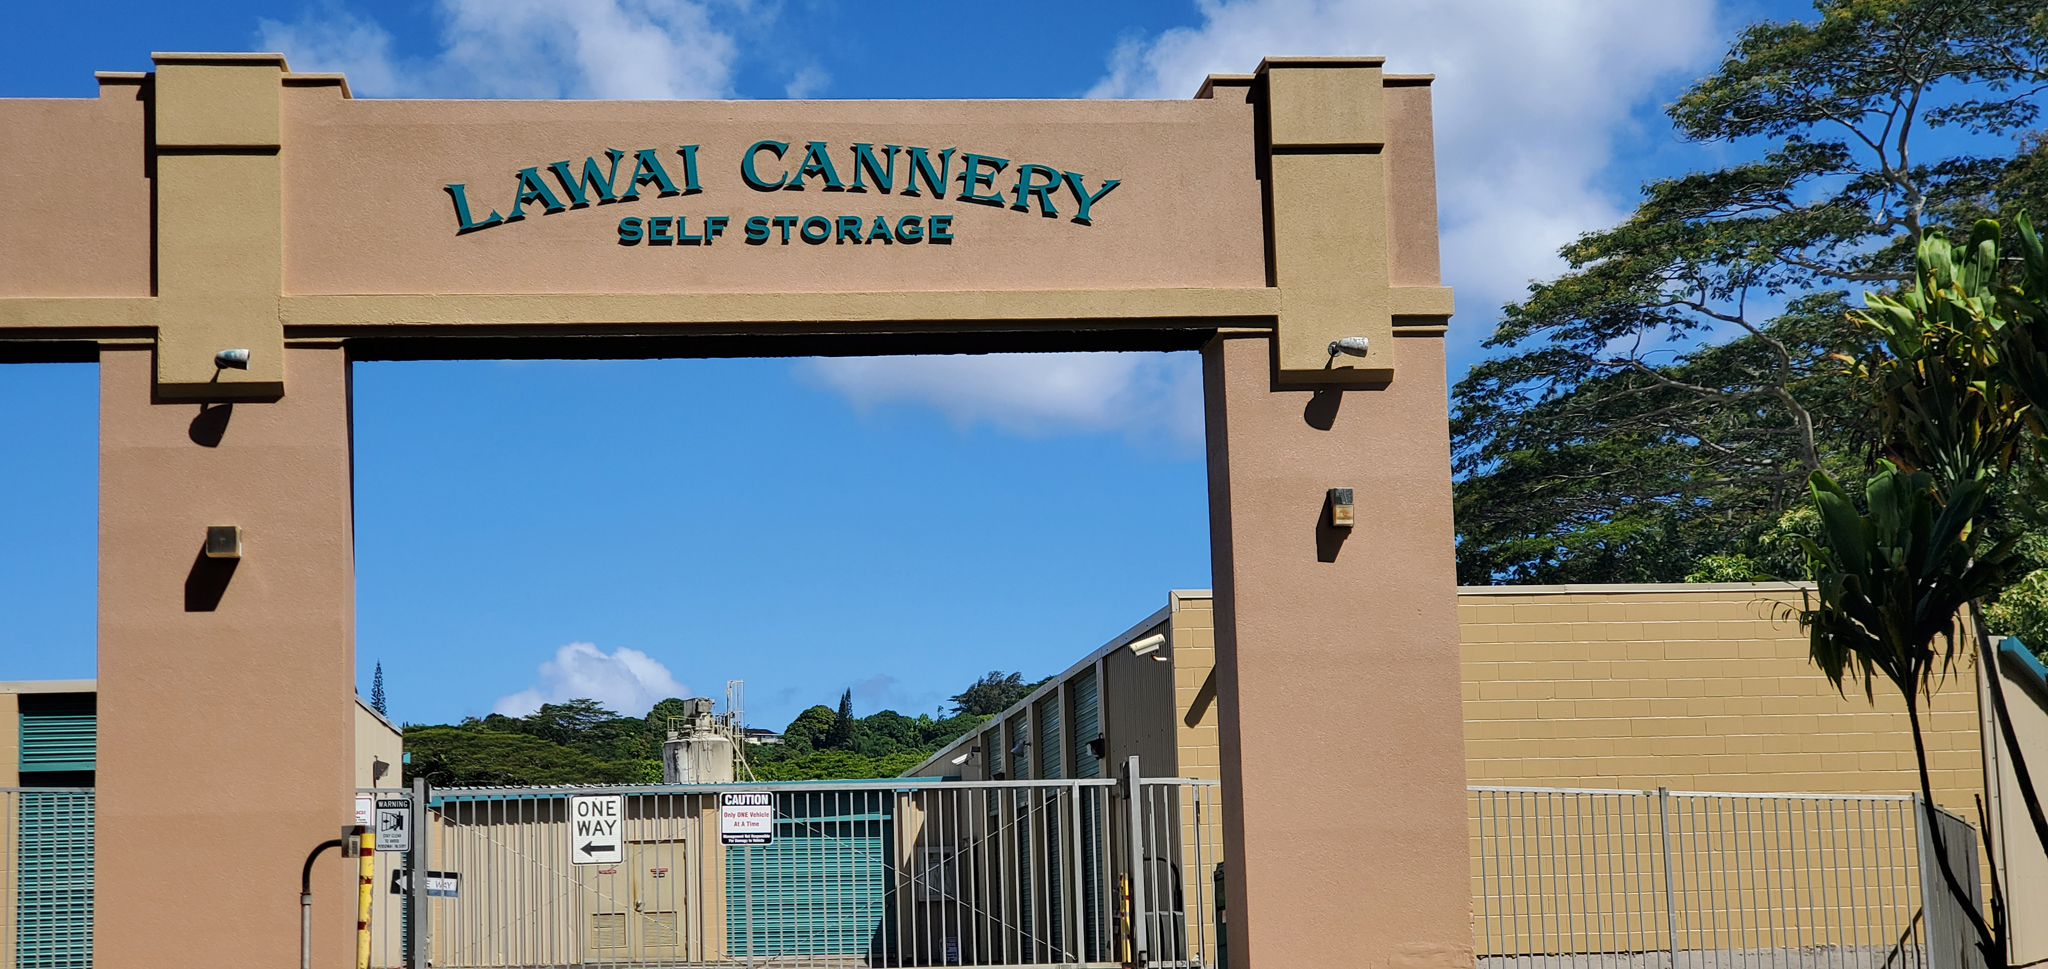 Lawai Cannery Self Storage Front gate and sign